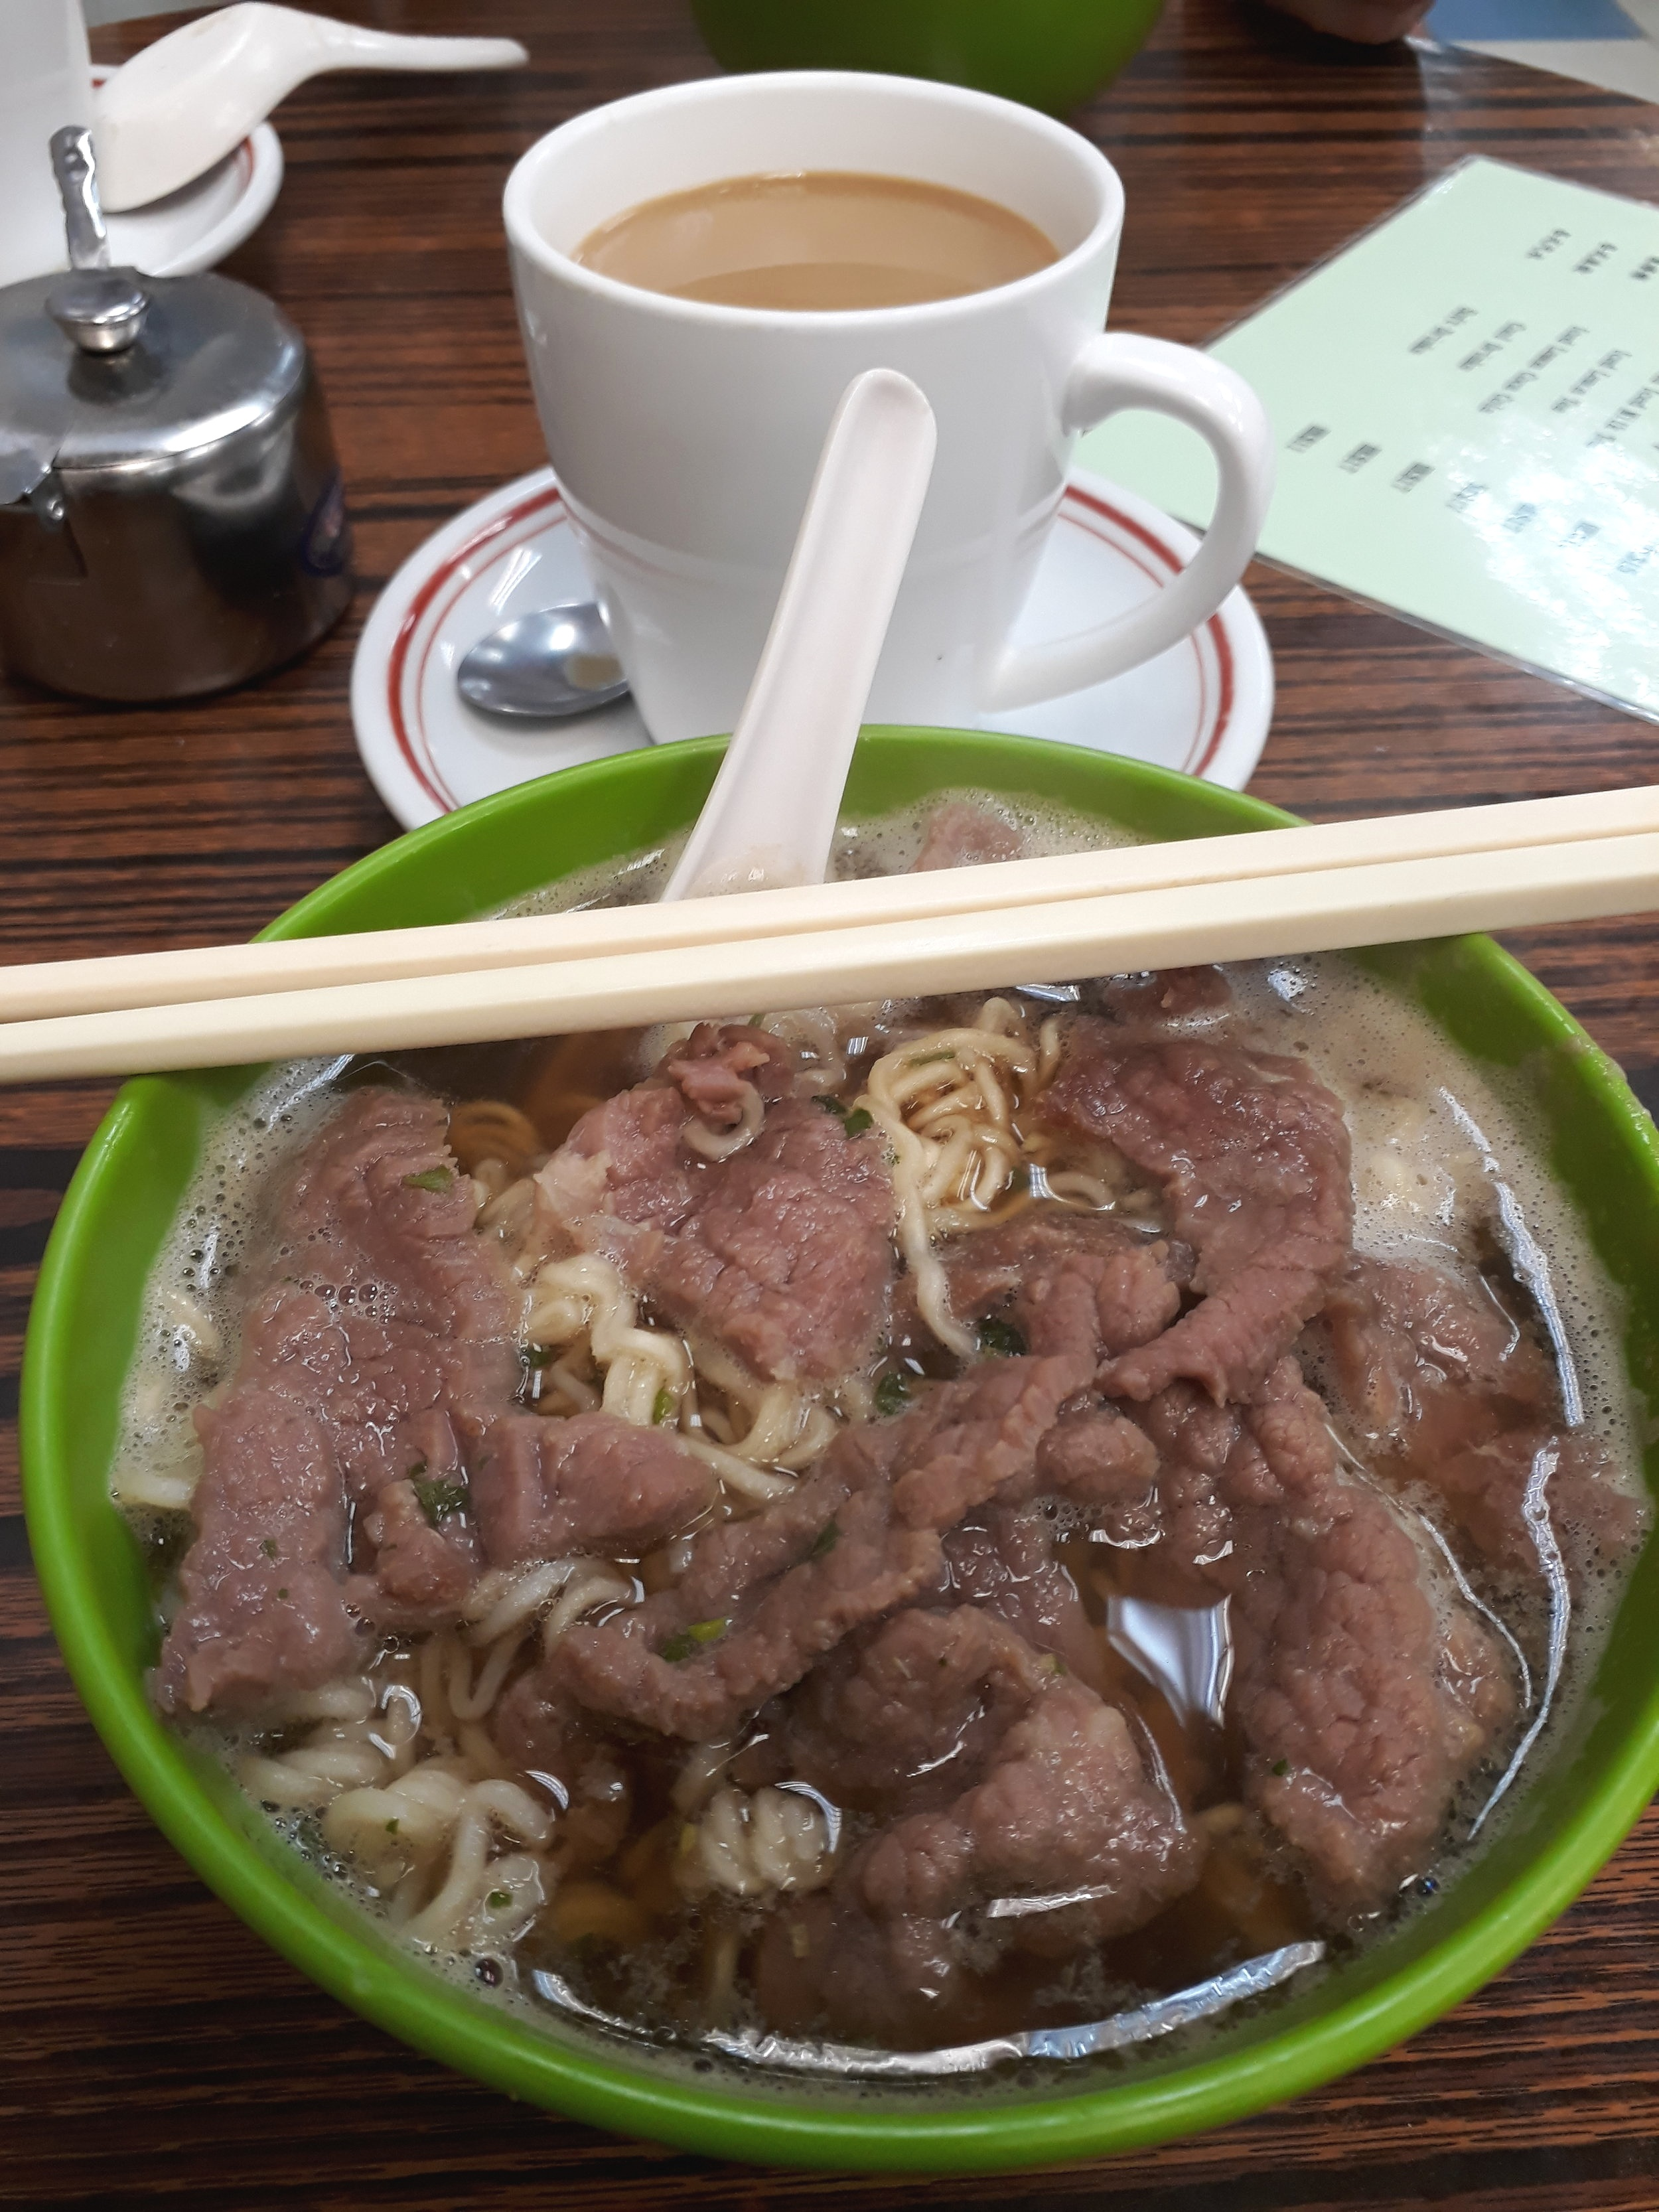 Beef noodle soup for breakfast